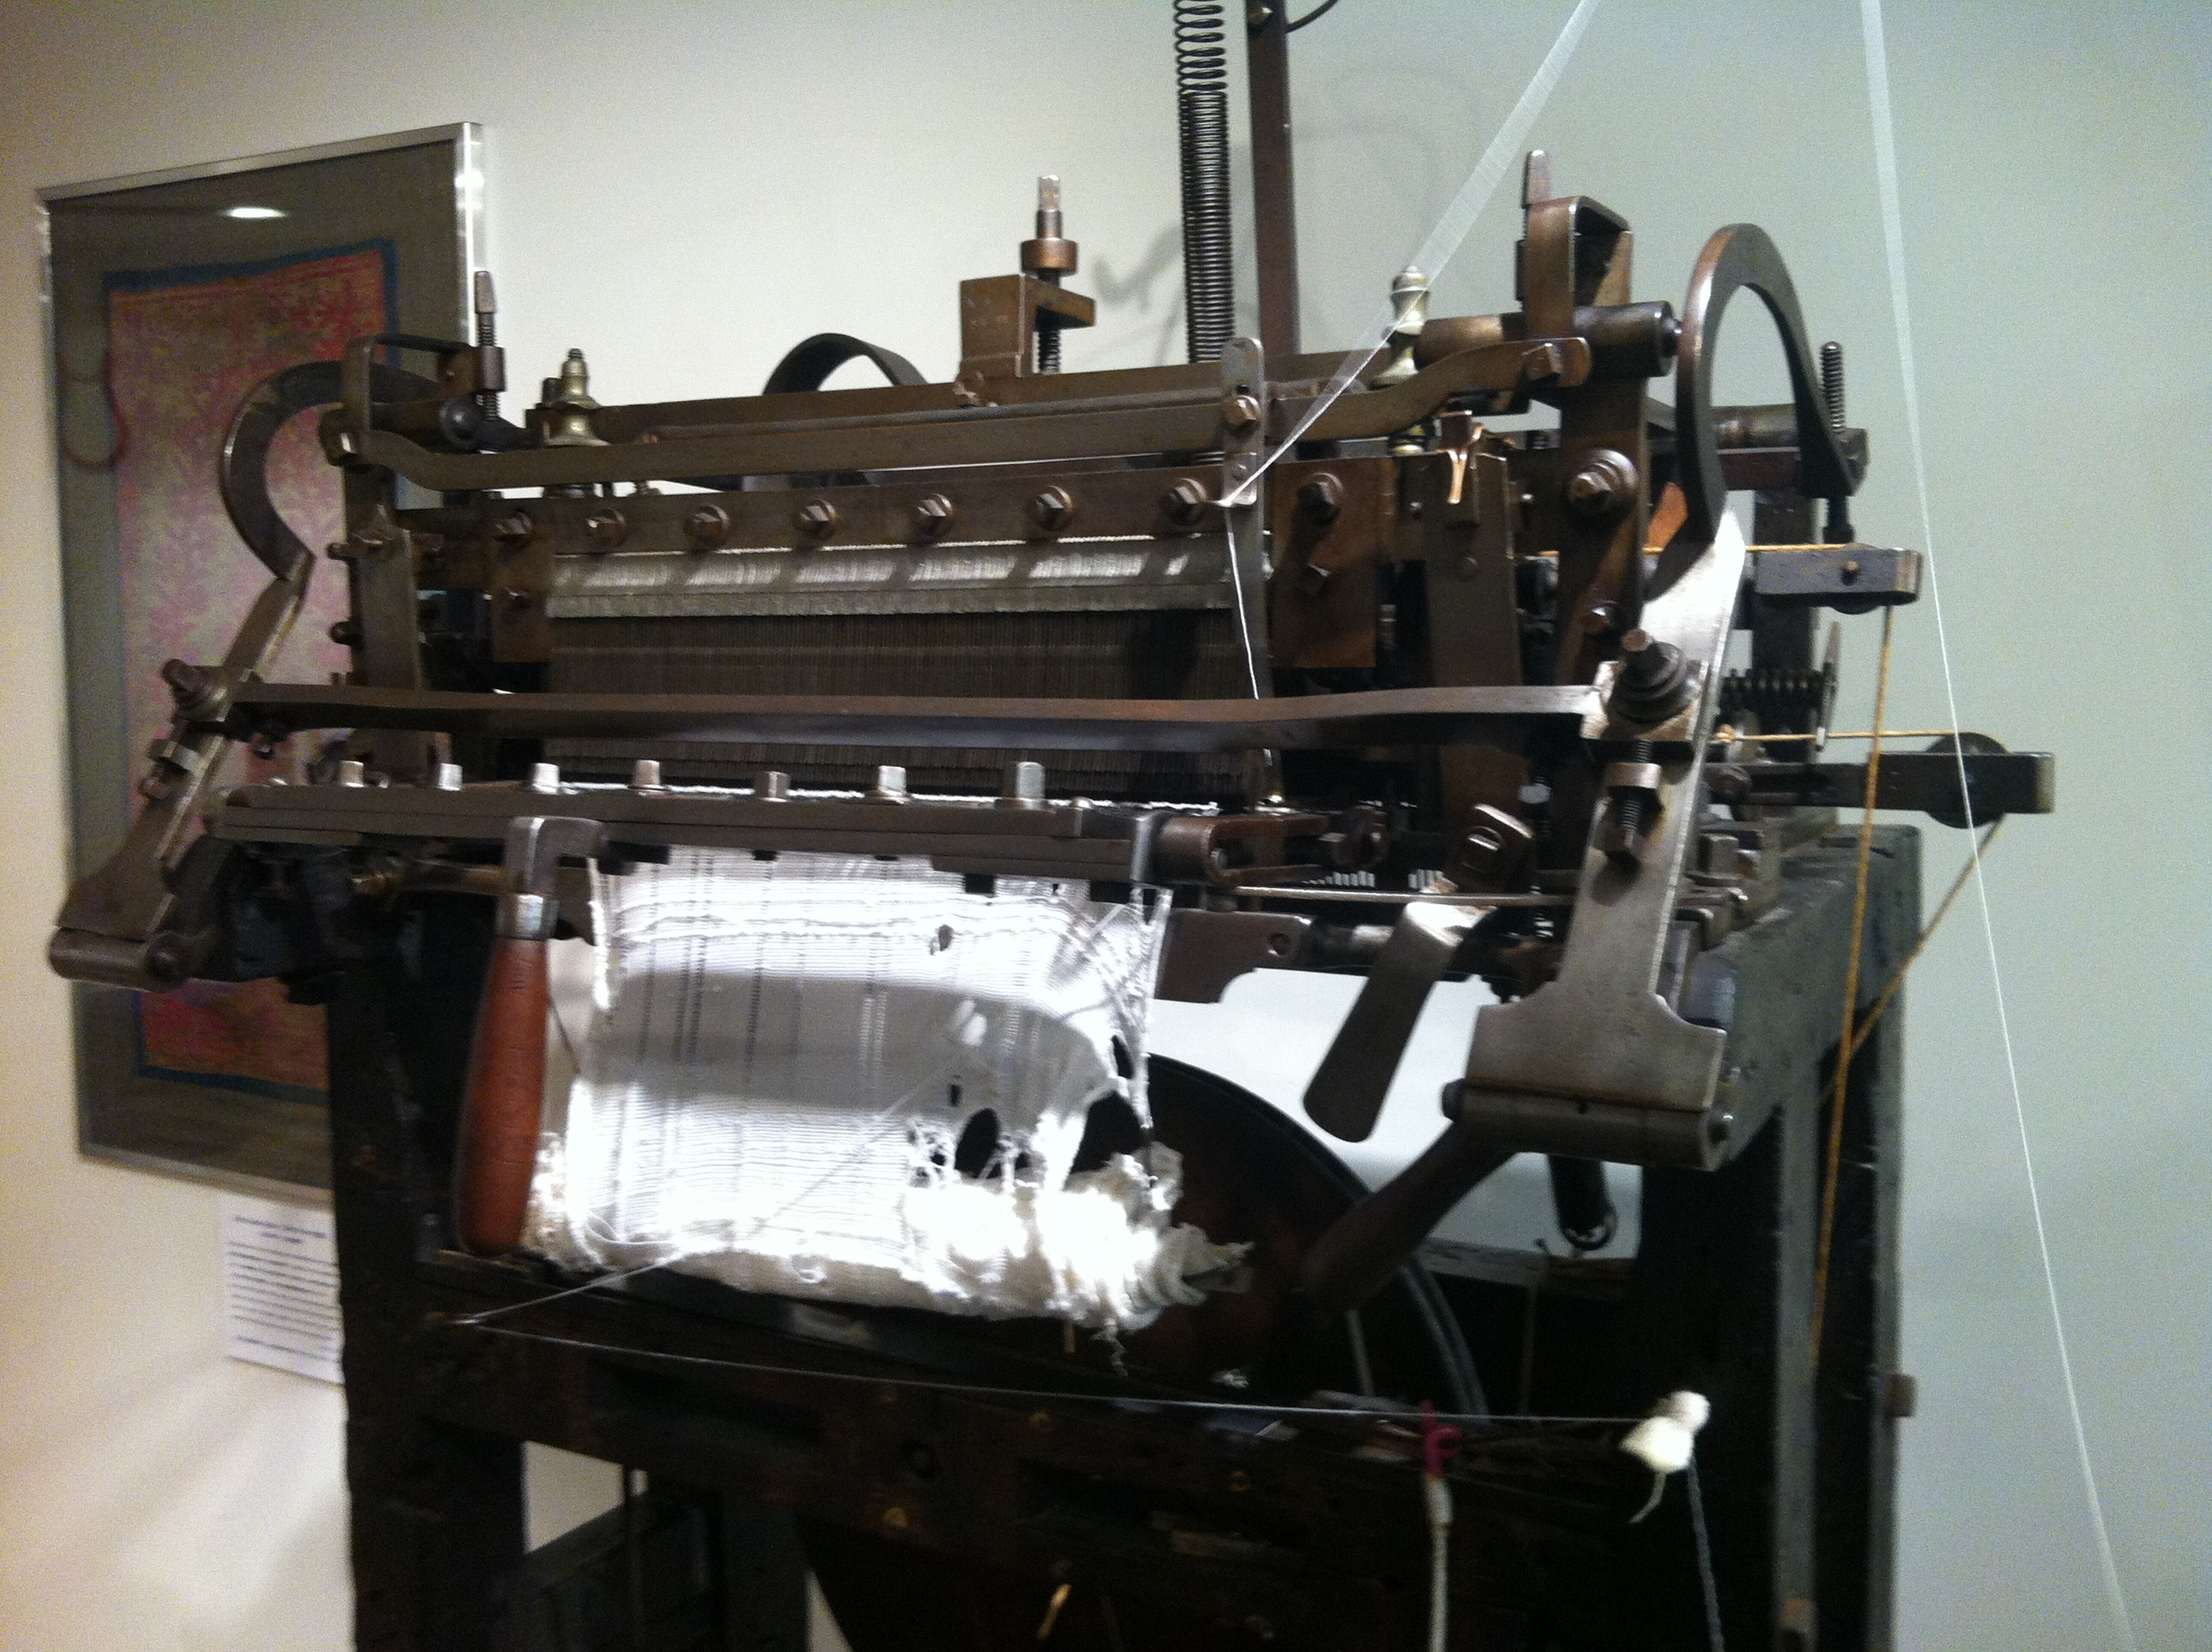 A stocking frame machine built around 1860 still functions (somewhat) at the Shima Seiki Museum in Wakayama, Japan.